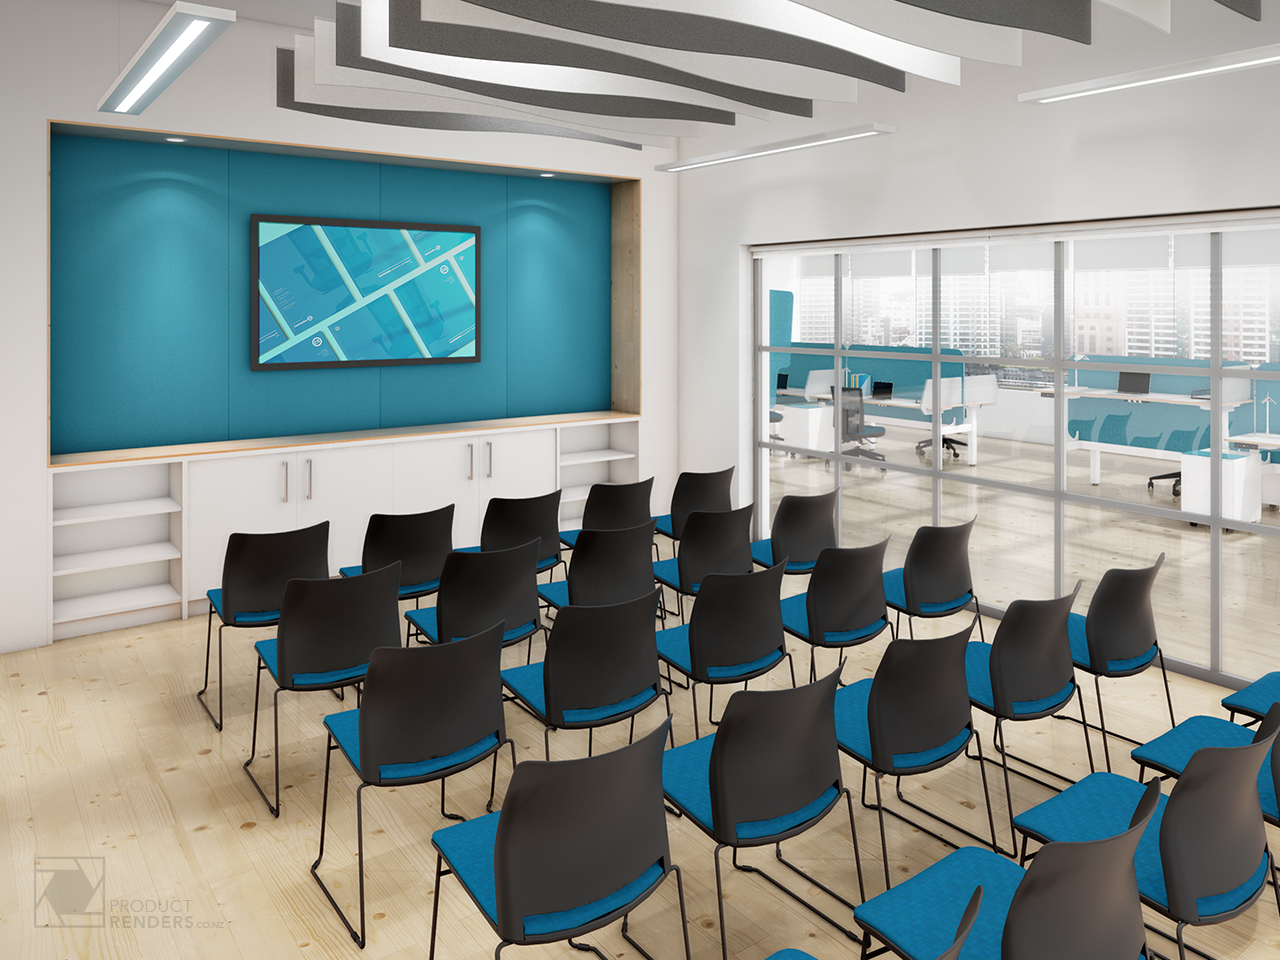 3D render of a training room inside an office showroom